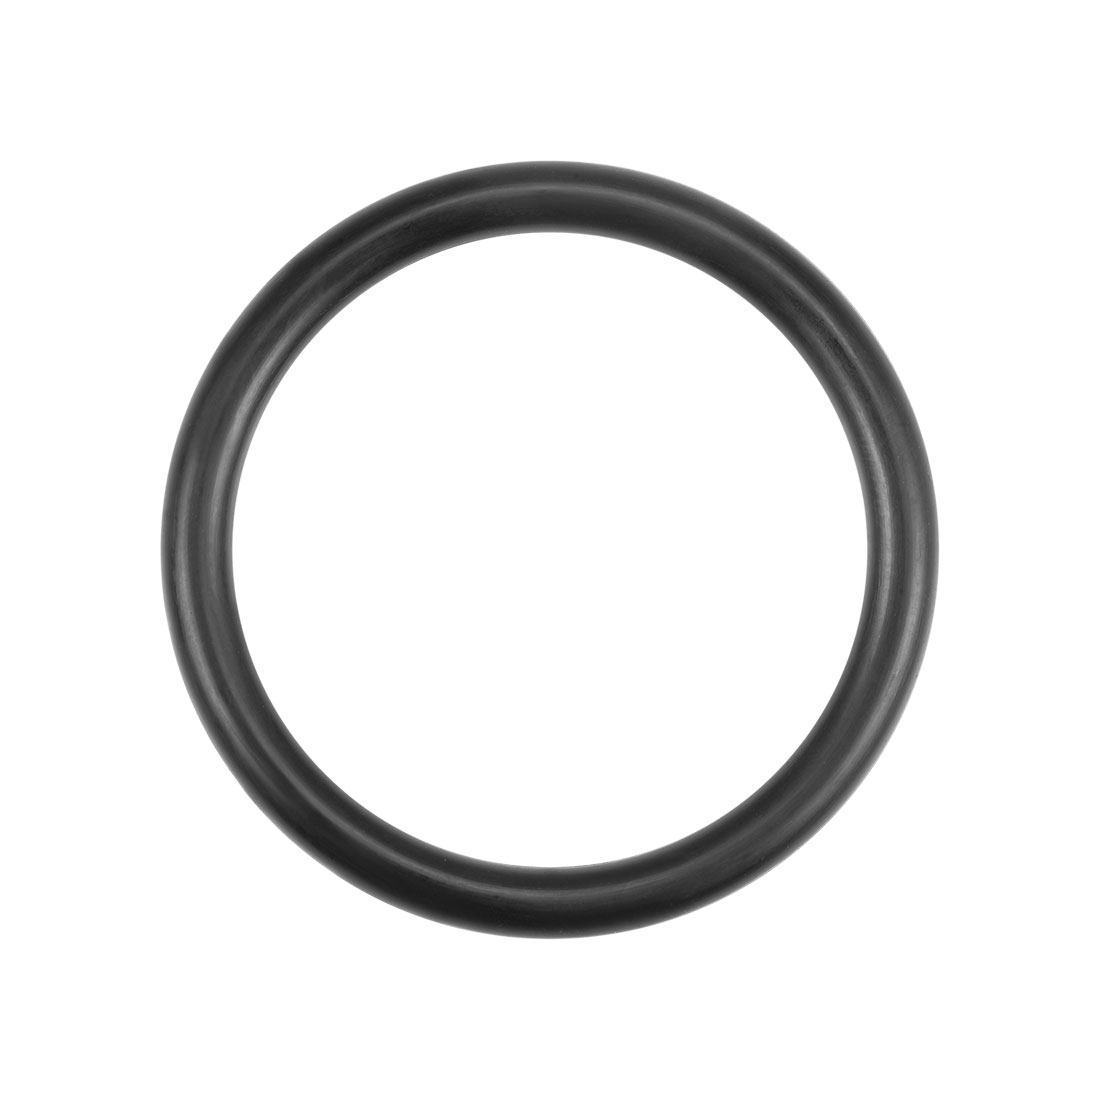 O-Rings Nitrile Rubber 33mm x 41mm x 4mm Round Seal Gasket